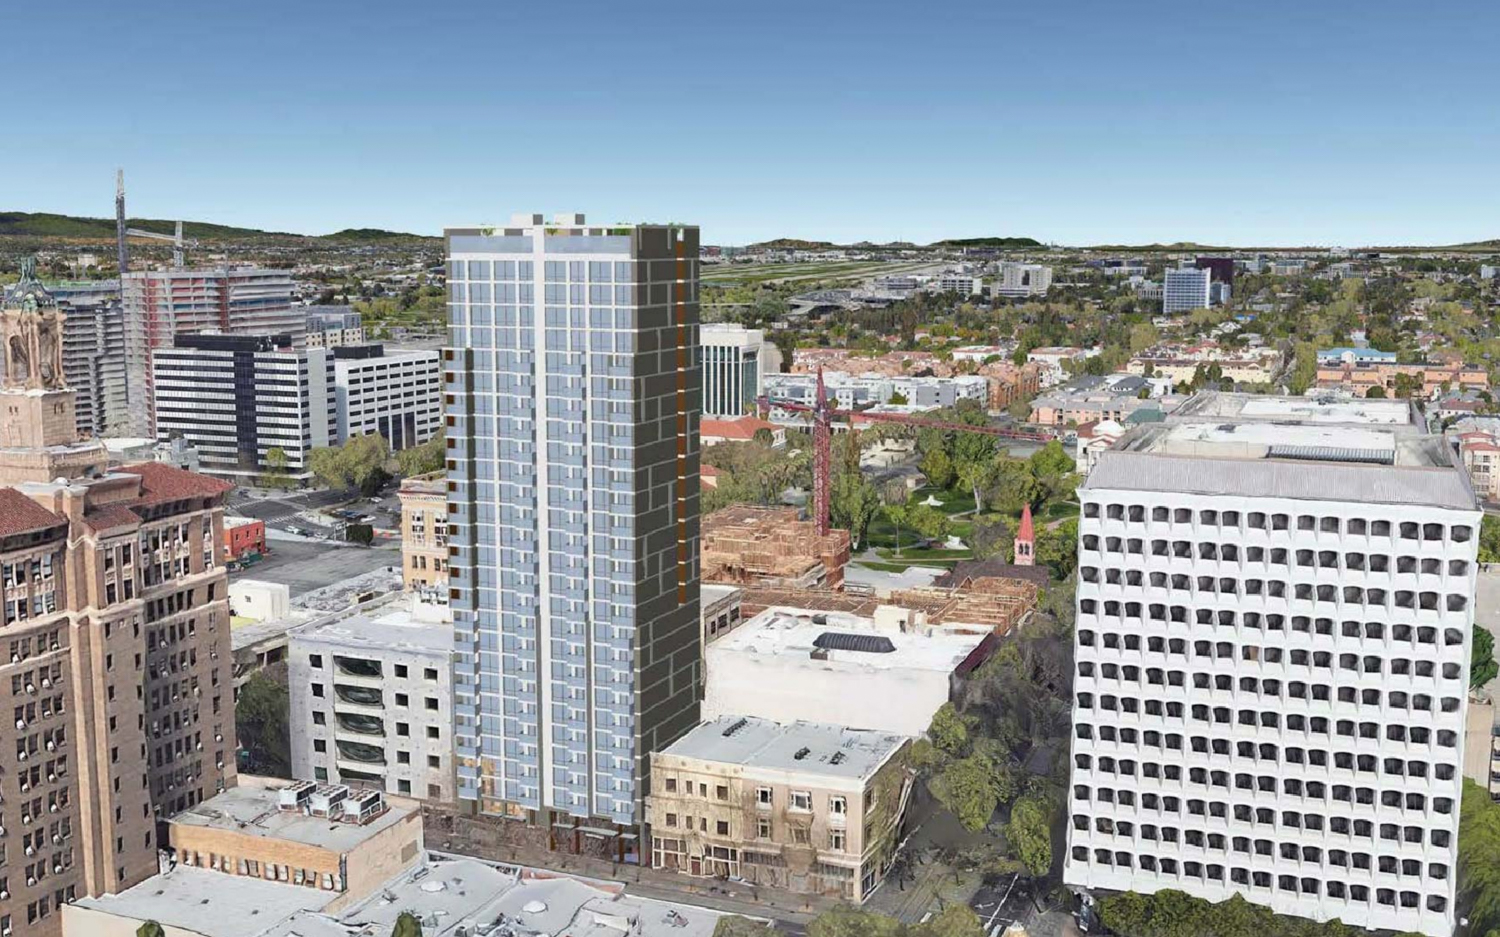 17 East Santa Clara Street aerial perspective looking north, design by Anderson Architects